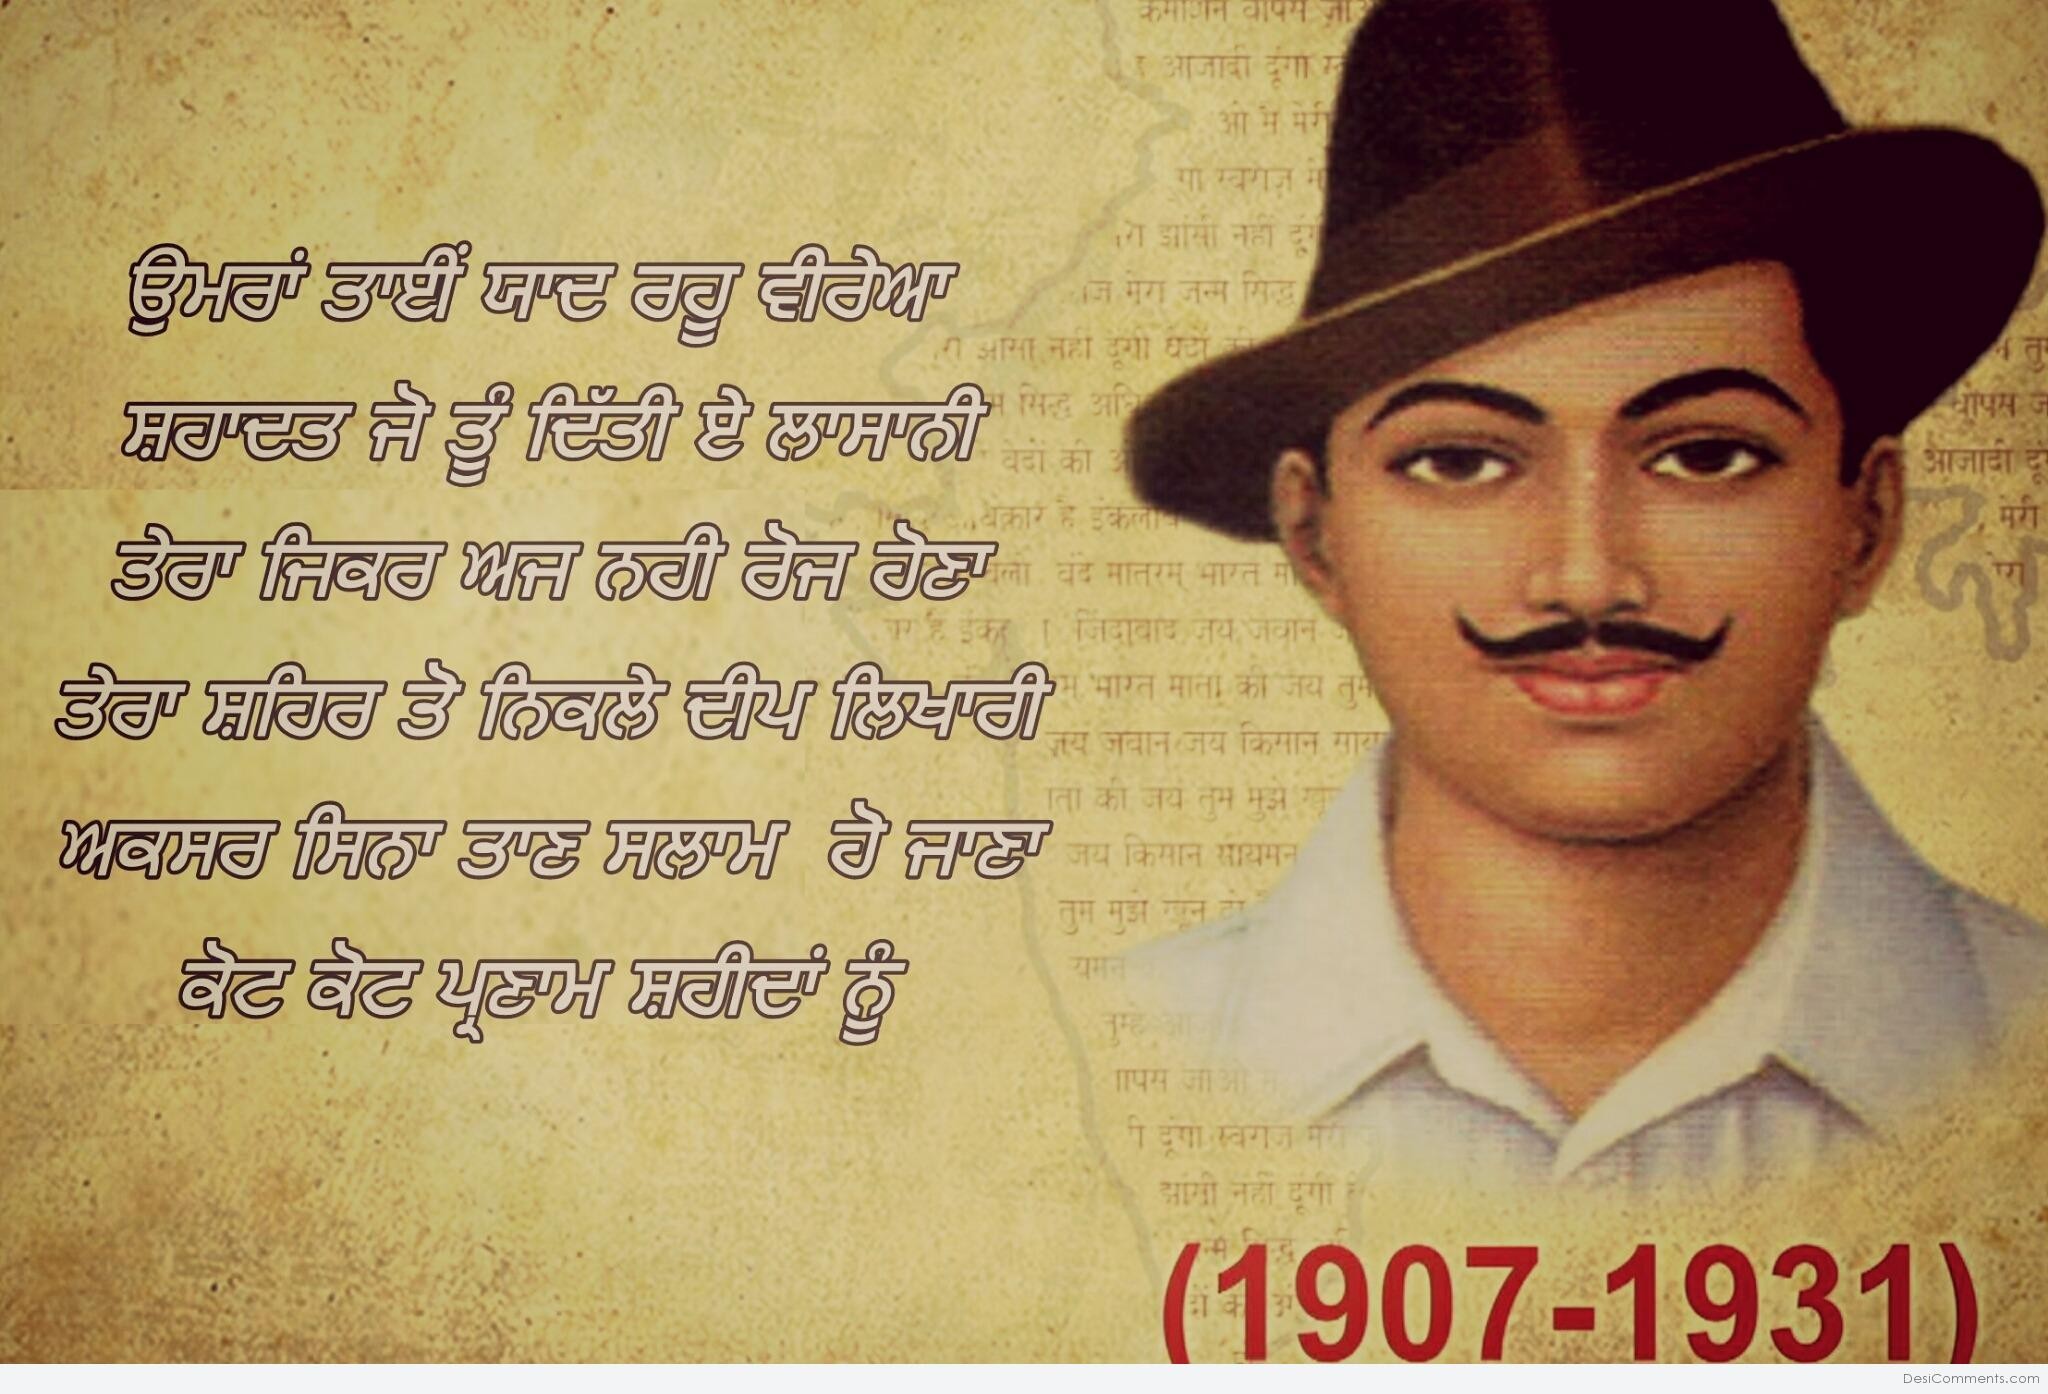 bagat singh Freedom fighters bhagat singh quotes in hindi, bhagat singh biography in hindi, quotes by bhagat singh, slogan of bhagat singh, hindi essay on bhagat singh.